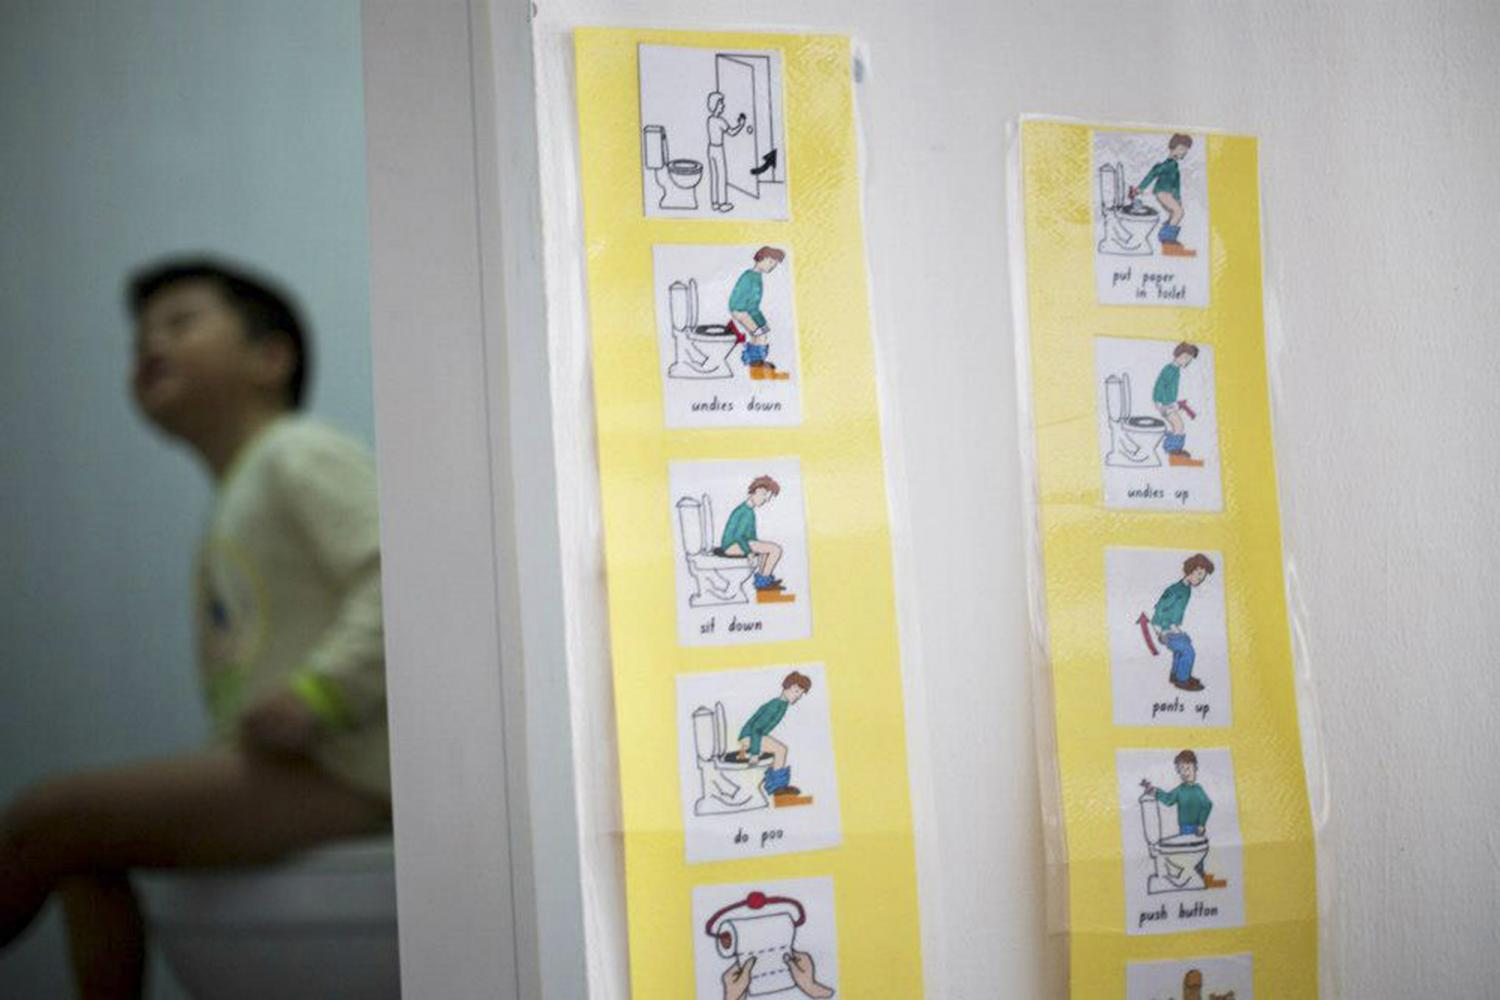 His occupational therapist prepares a set of instructions with pictures which we use to teach Jun Le how to use the toilet on his own and develop good personal hygiene habits.